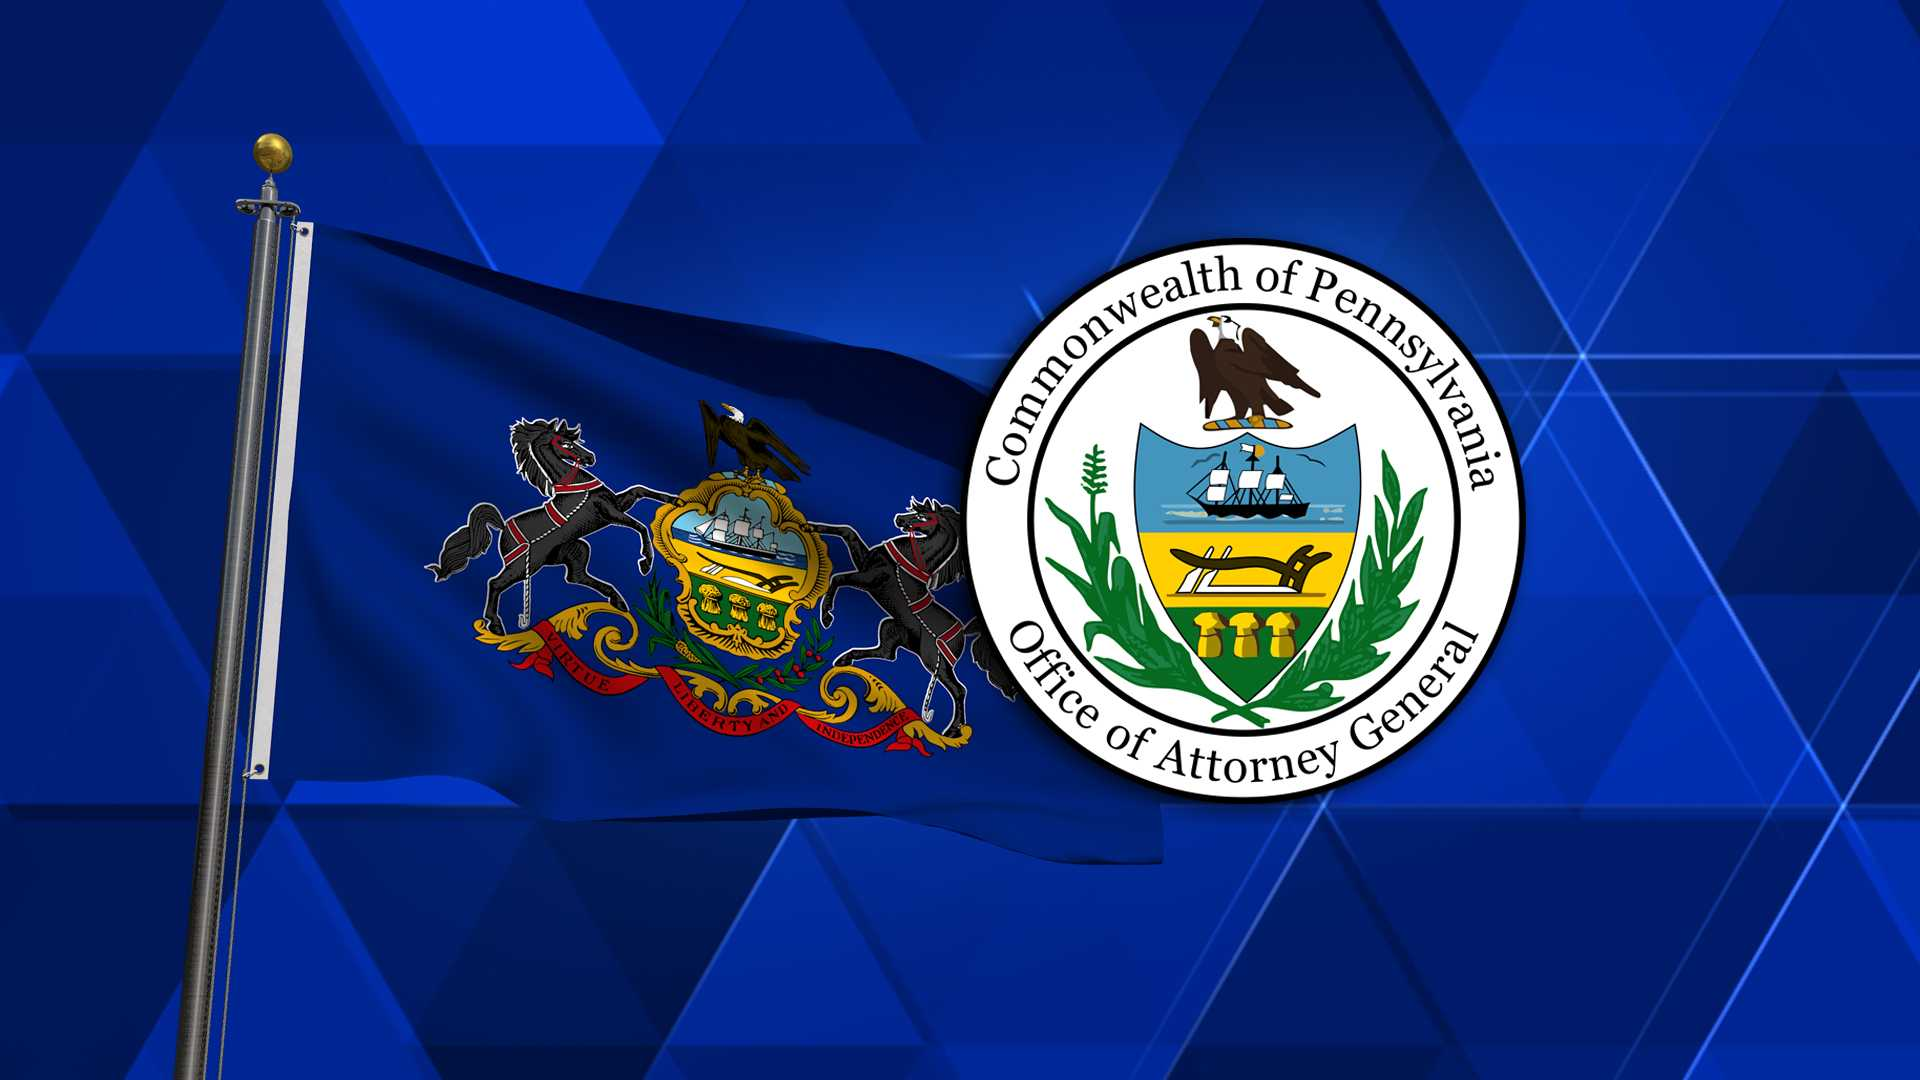 Pennsylvania Attorney General Flag and Seal